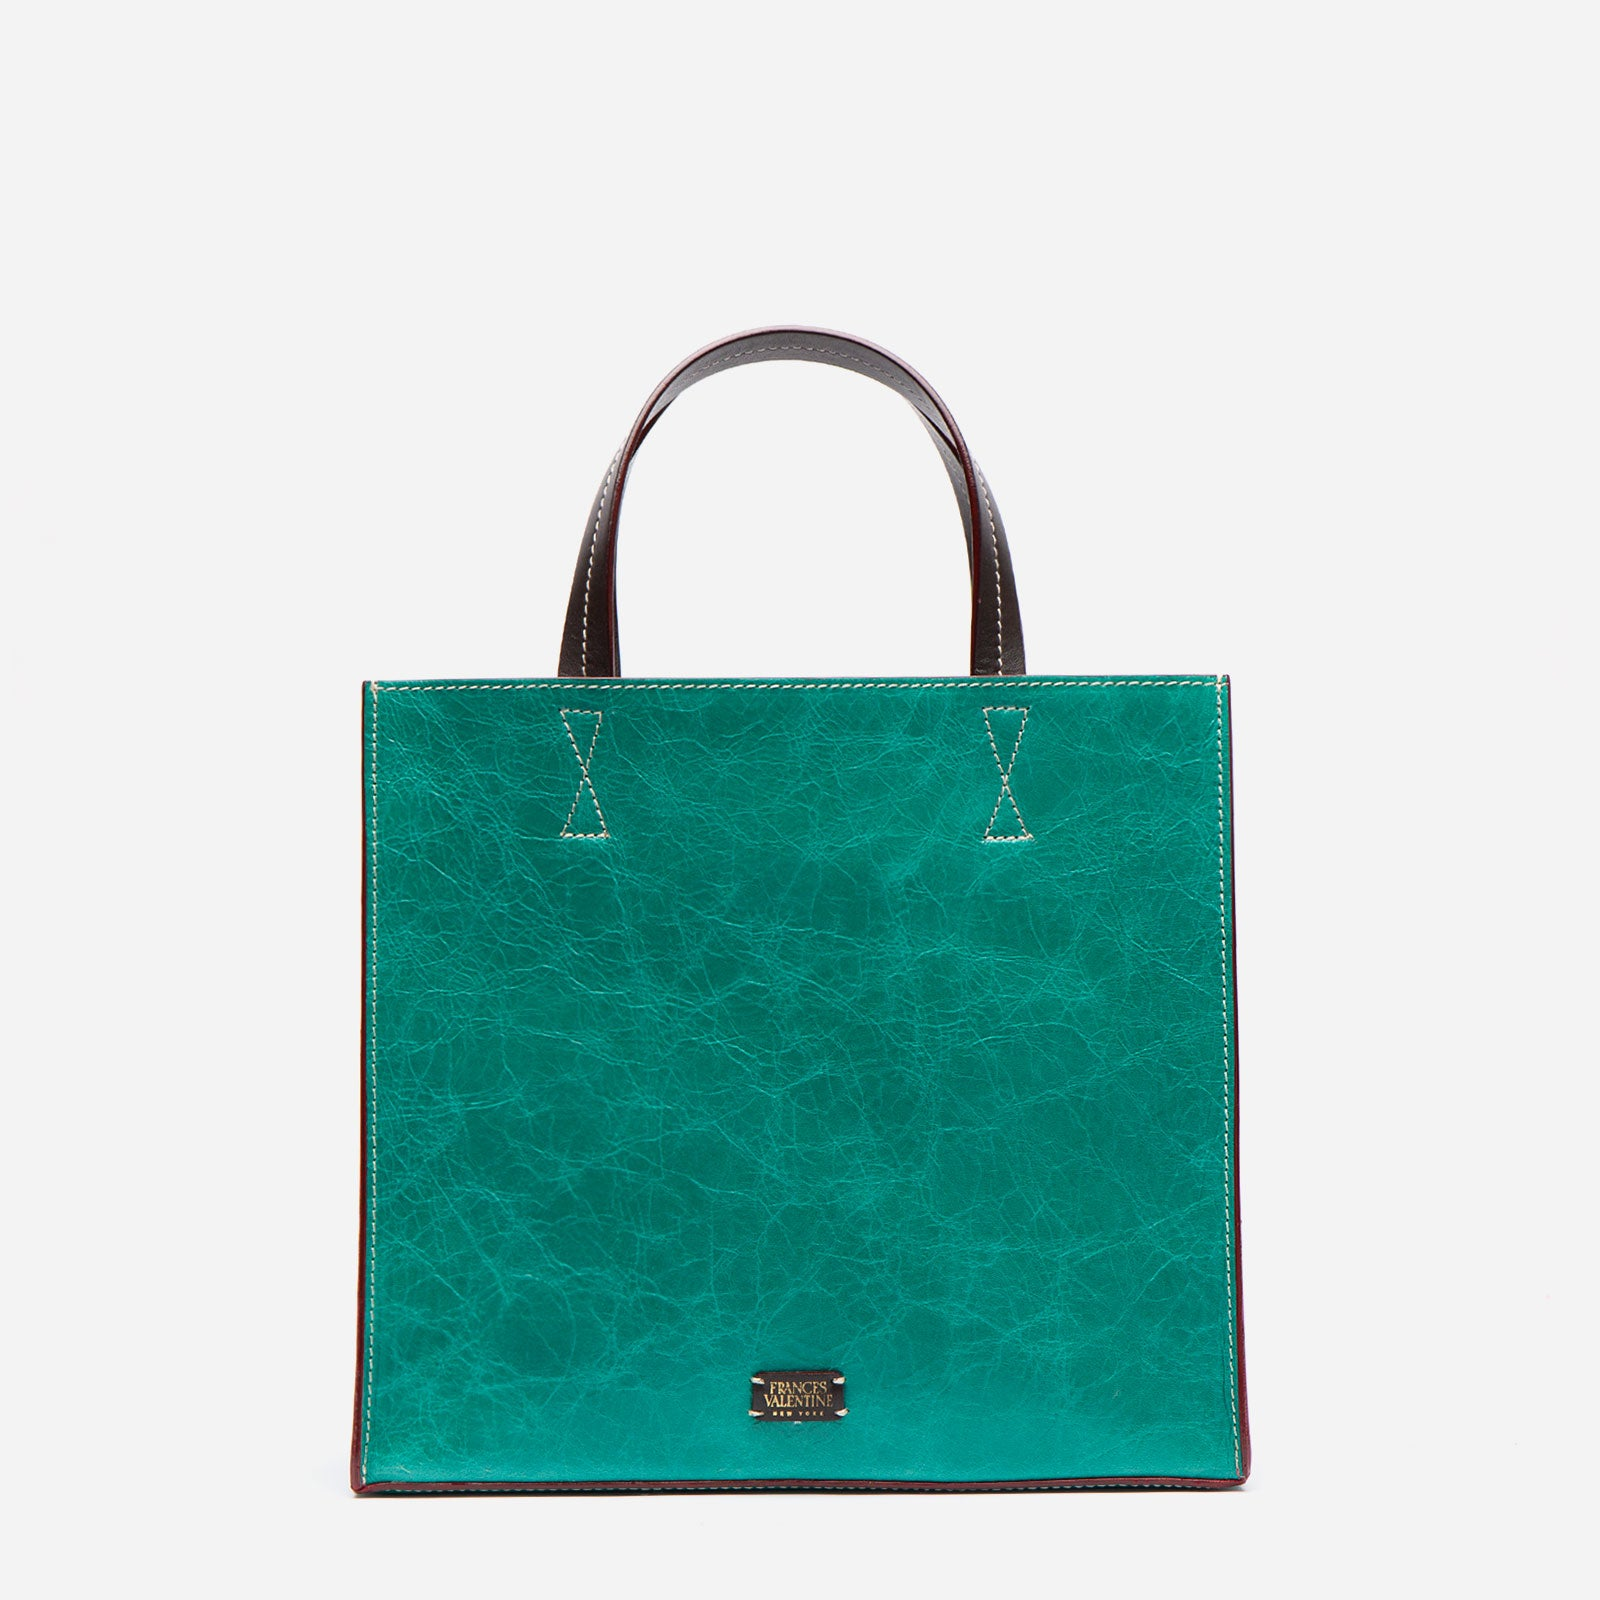 Margo Tote Naplak Leather Green Oyster - Frances Valentine